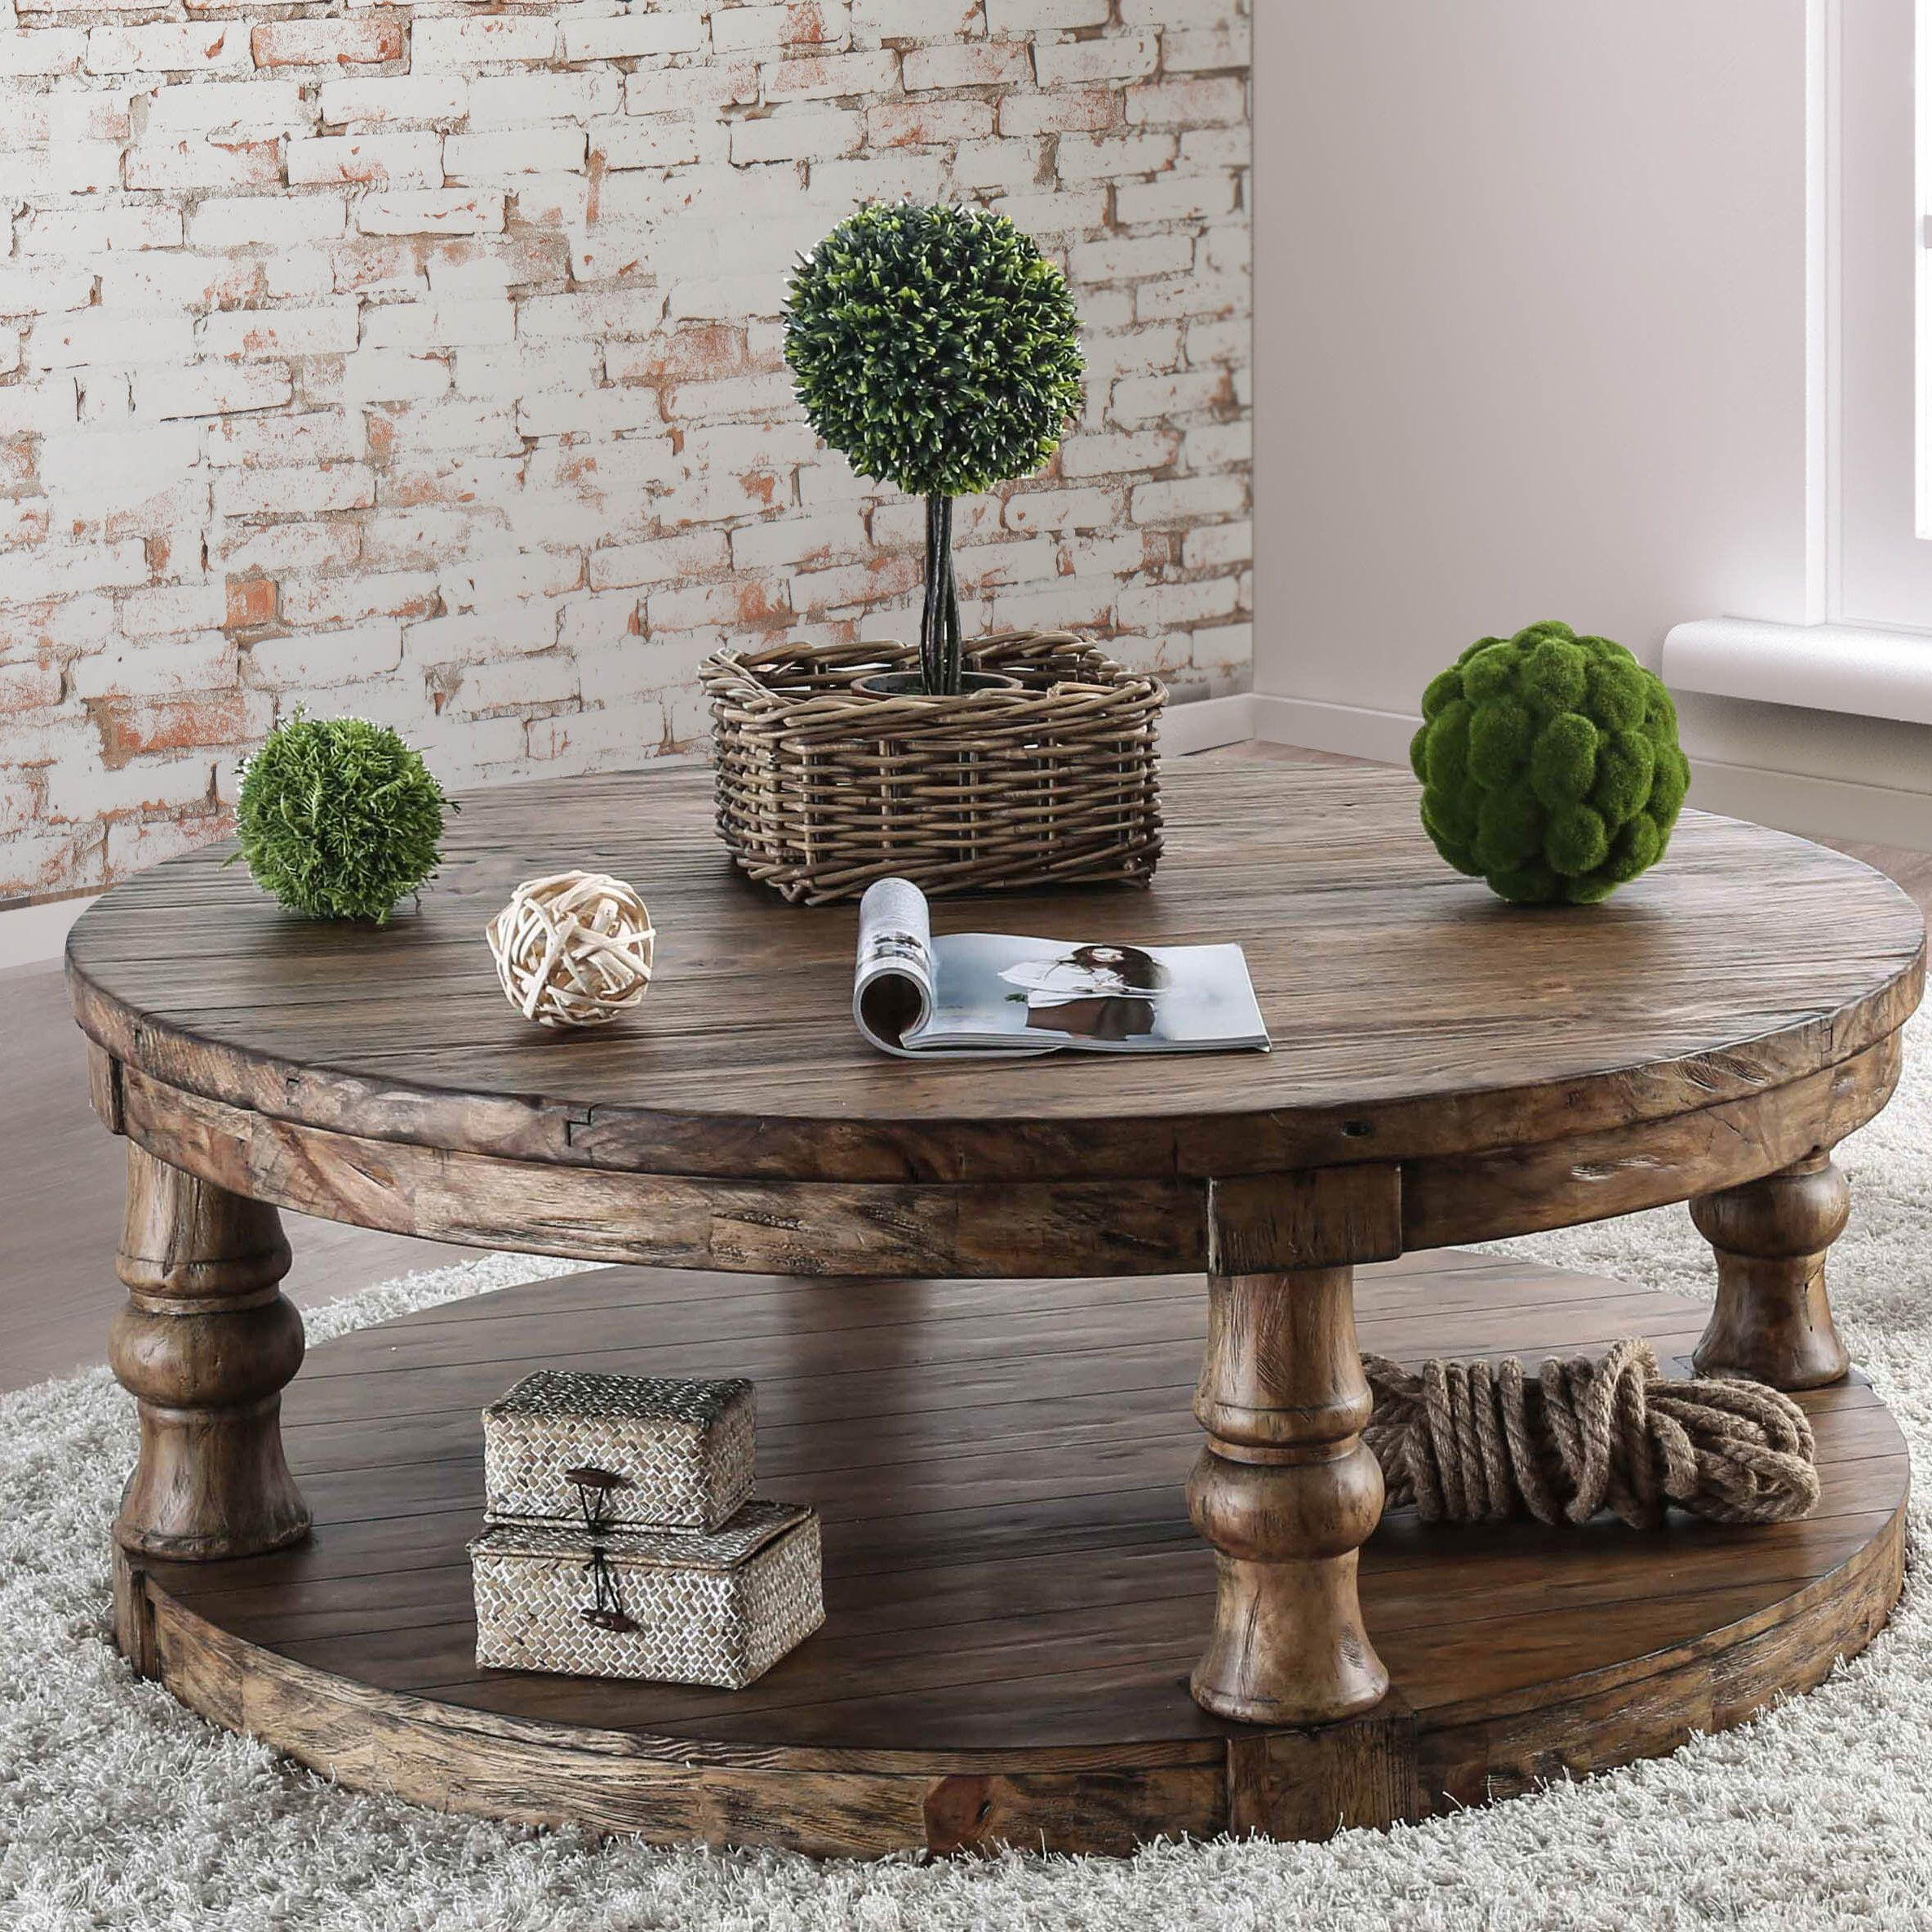 Amstel Floor Shelf Coffee Table with Storage | Round wood coffee table, Decorating coffee tables ...